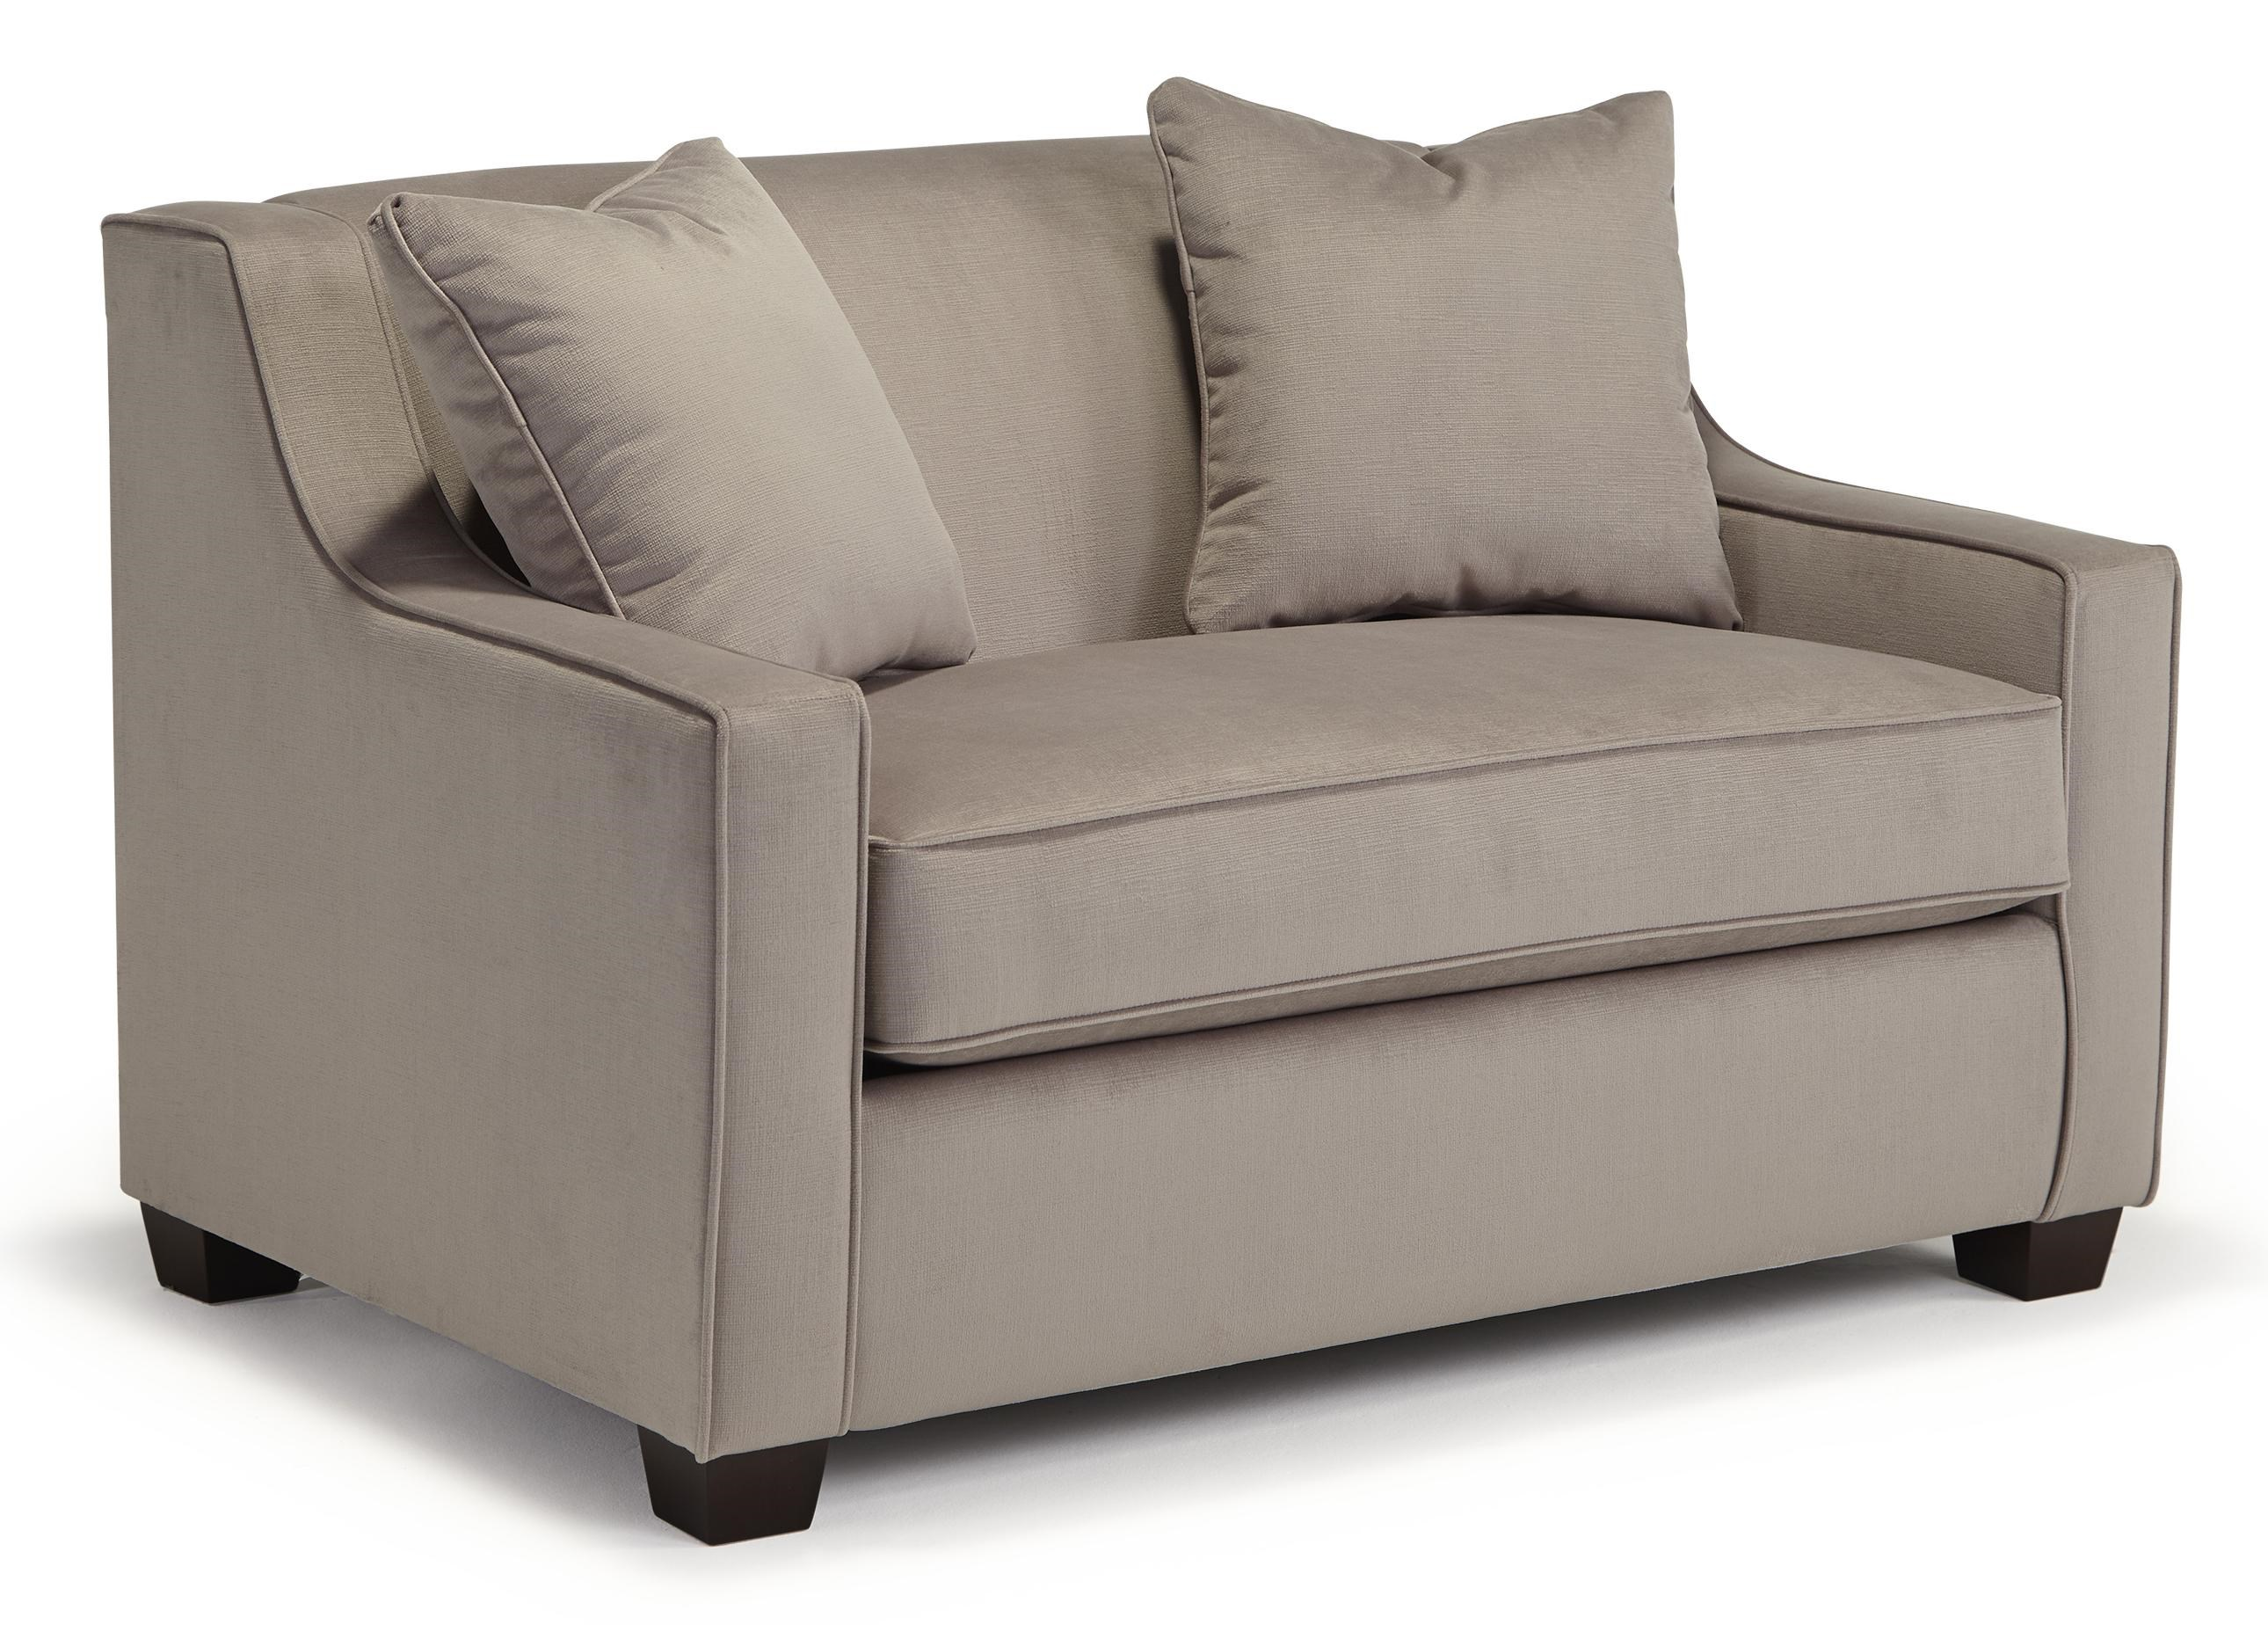 Best Home Furnishings | St. Louis, Chesterfield, St. Charles ...